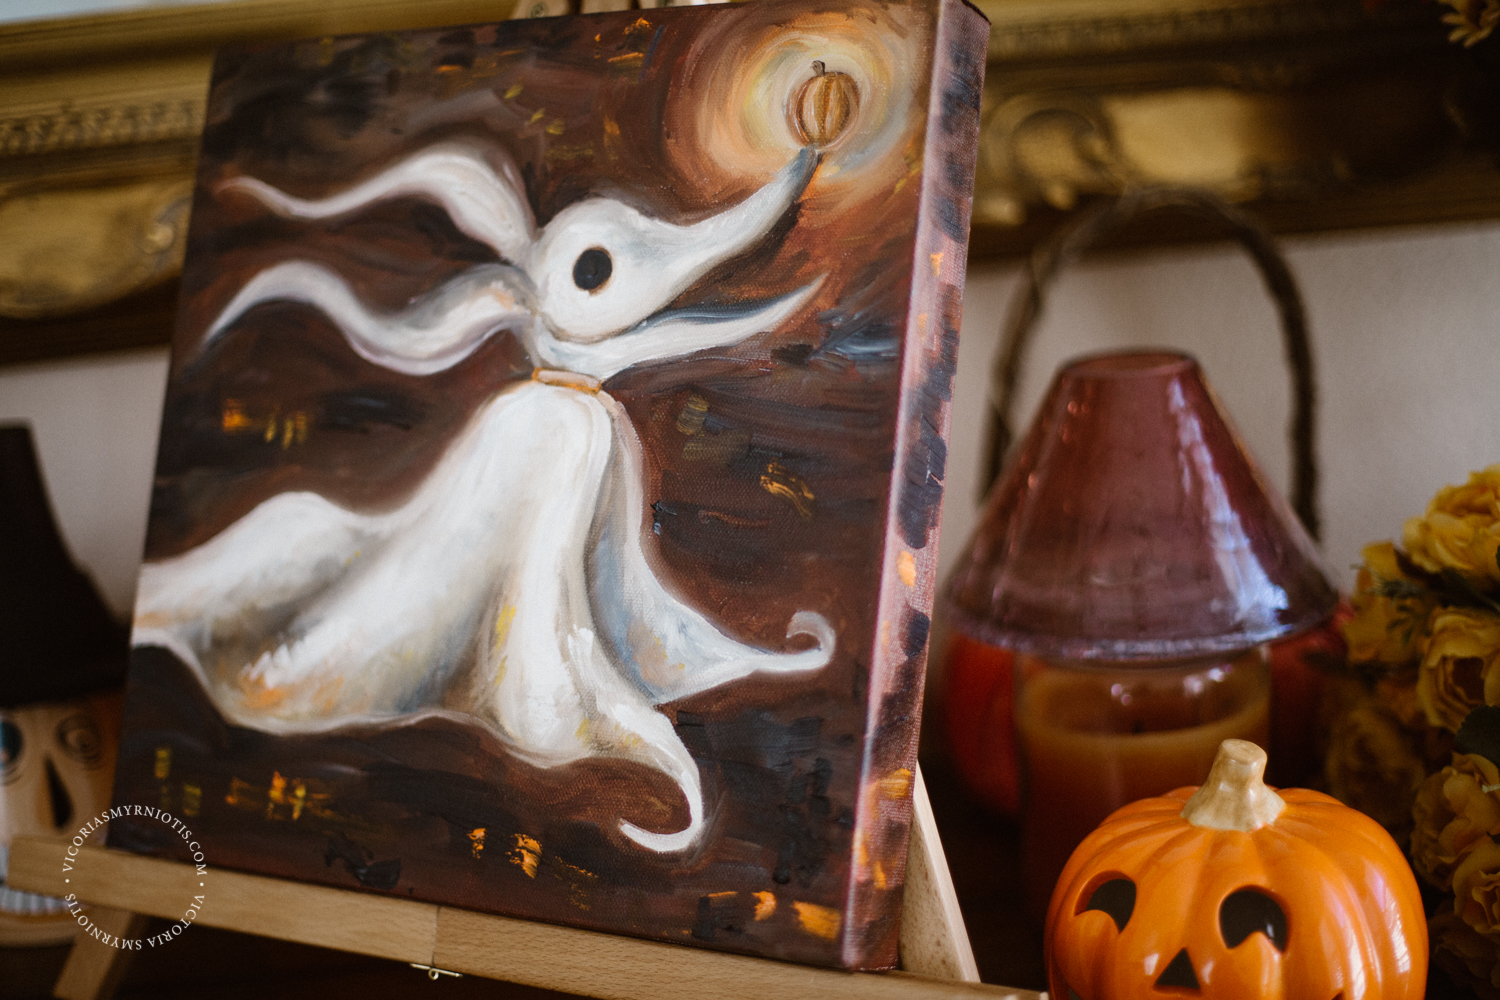 Zero from Nightmare Before Christmas Oil Painting on 12x12 stretched canvas Victoria Smyrniotis